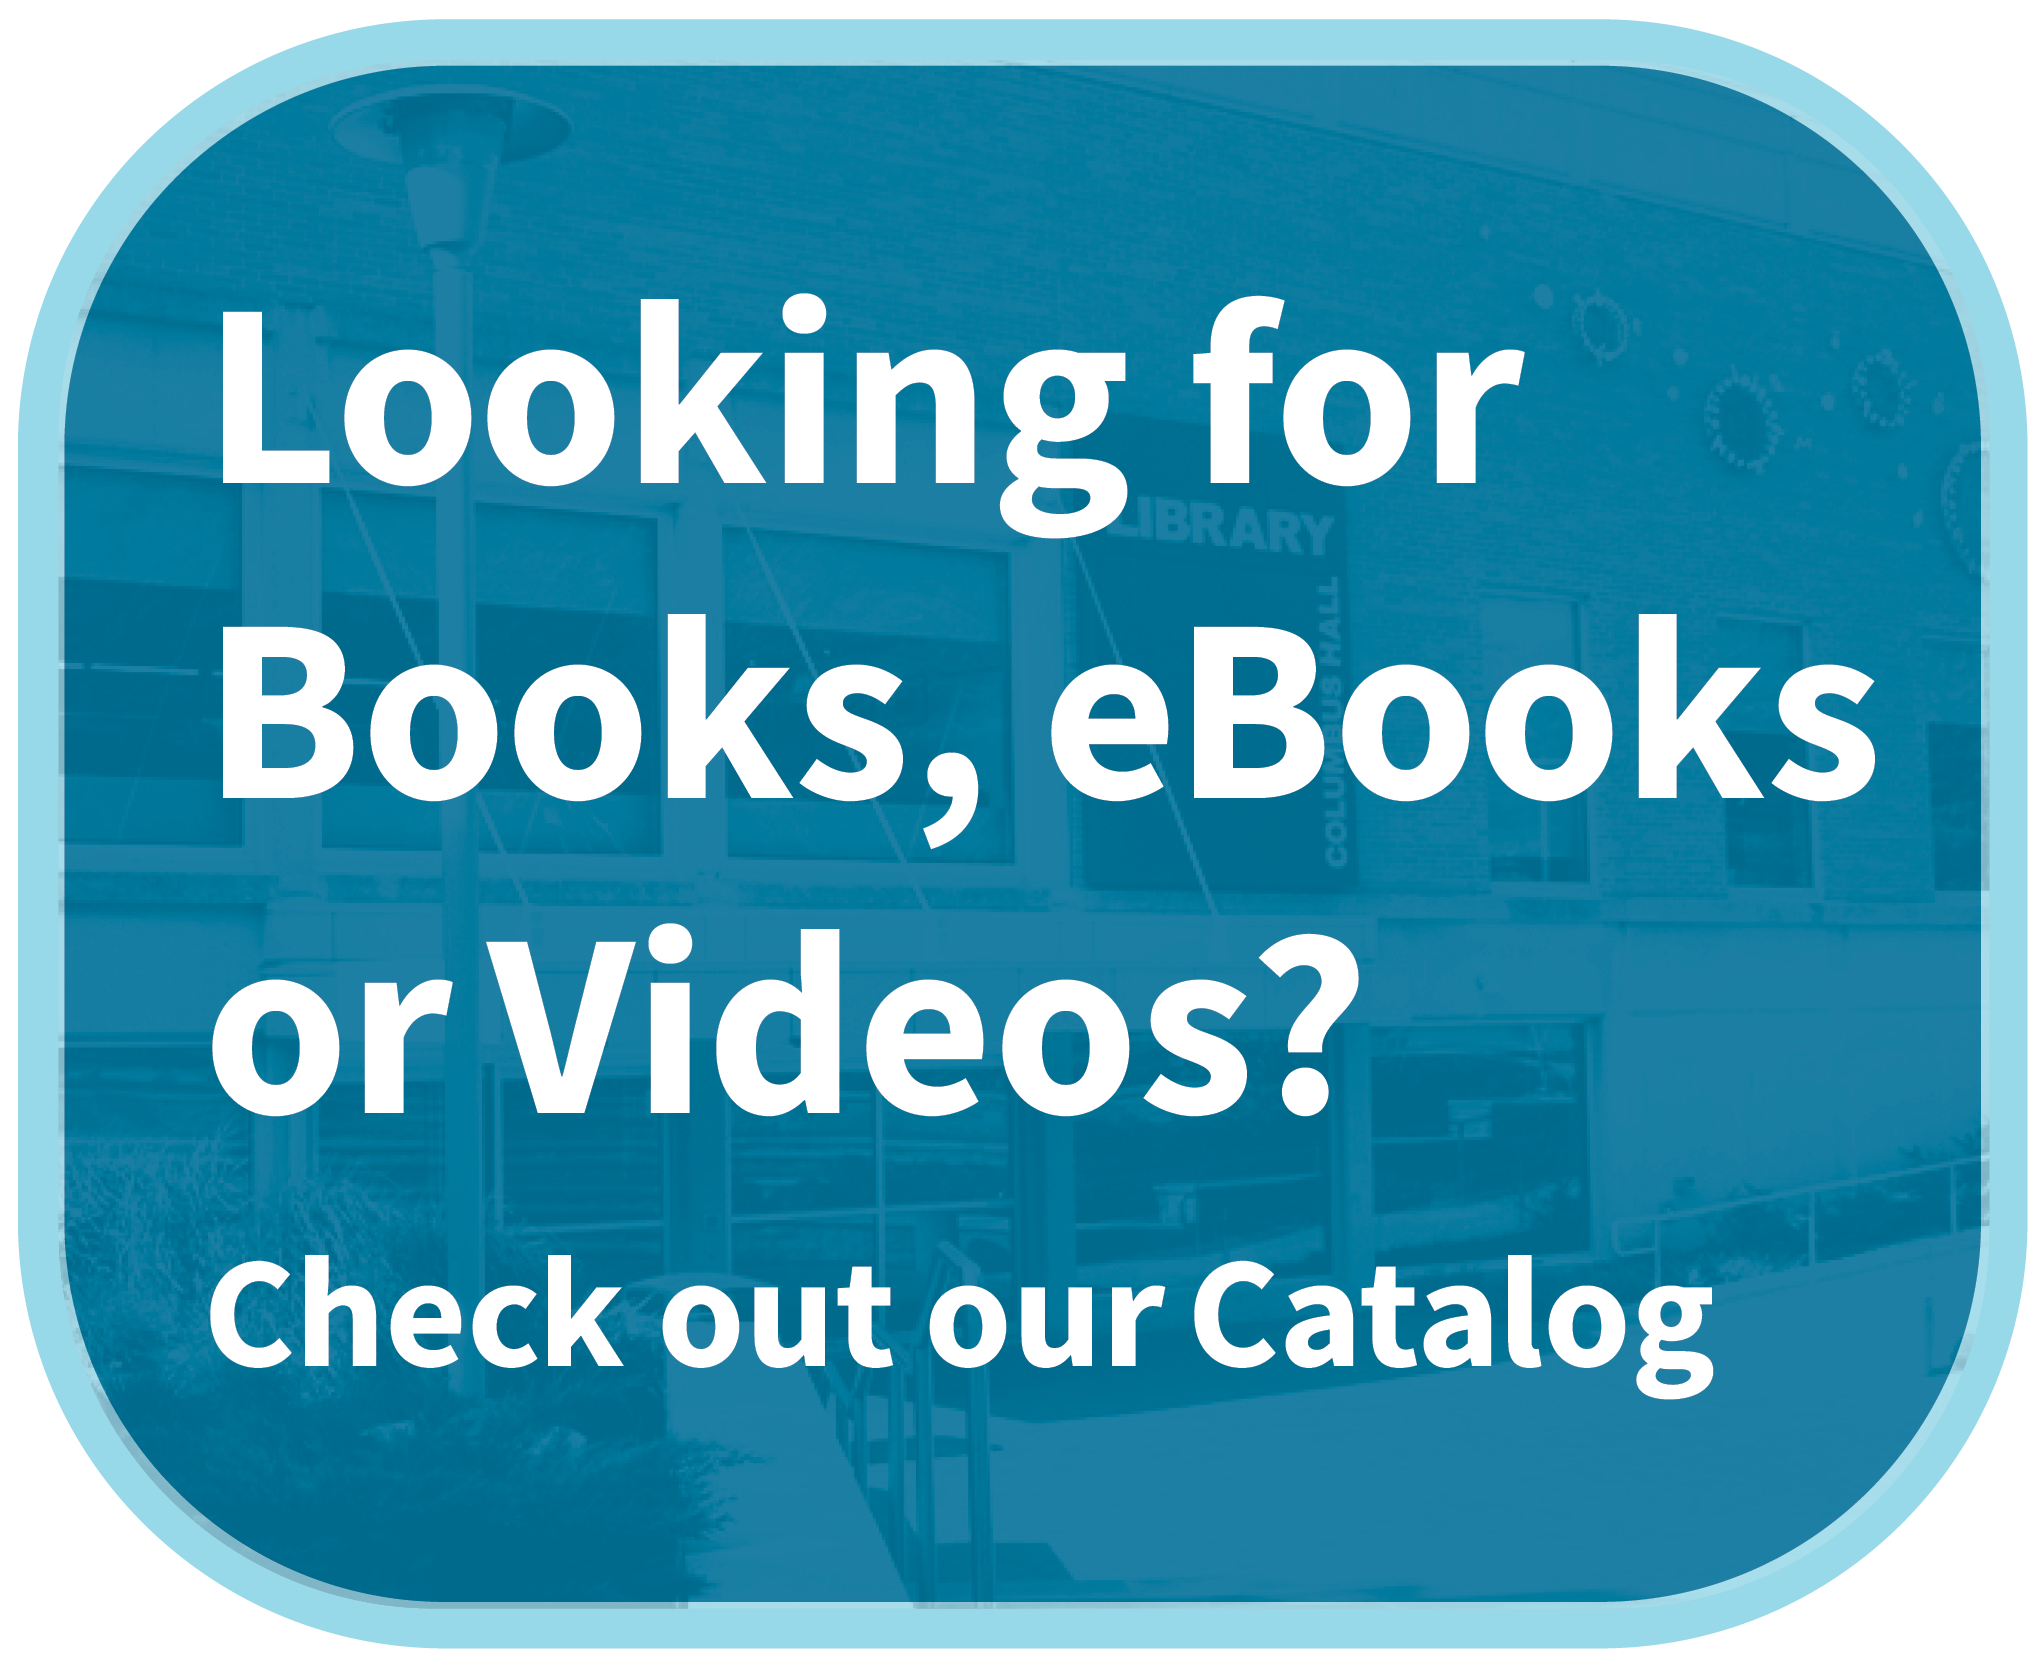 Need Books, eBooks, or Videos? Check our Catalog